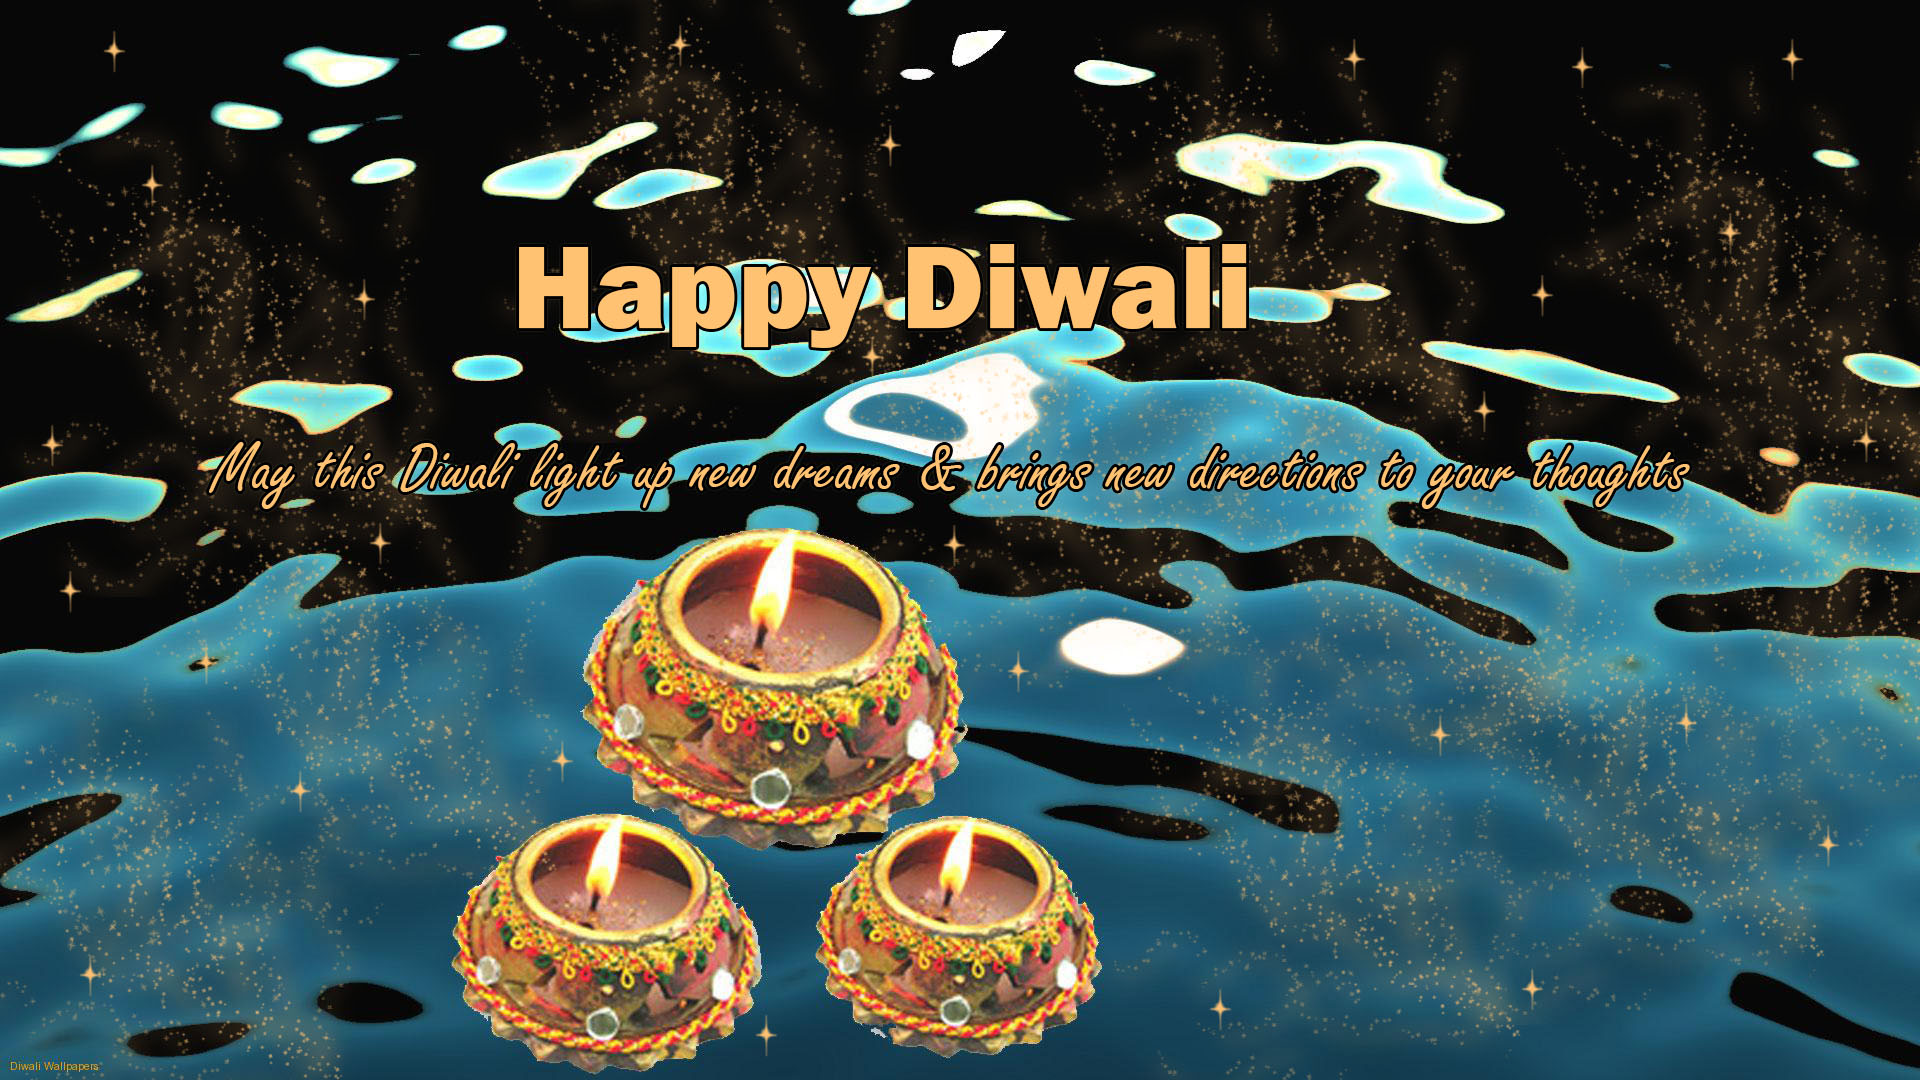 happy-diwali-hd-wallpapers-wishes-images-quotes-2017